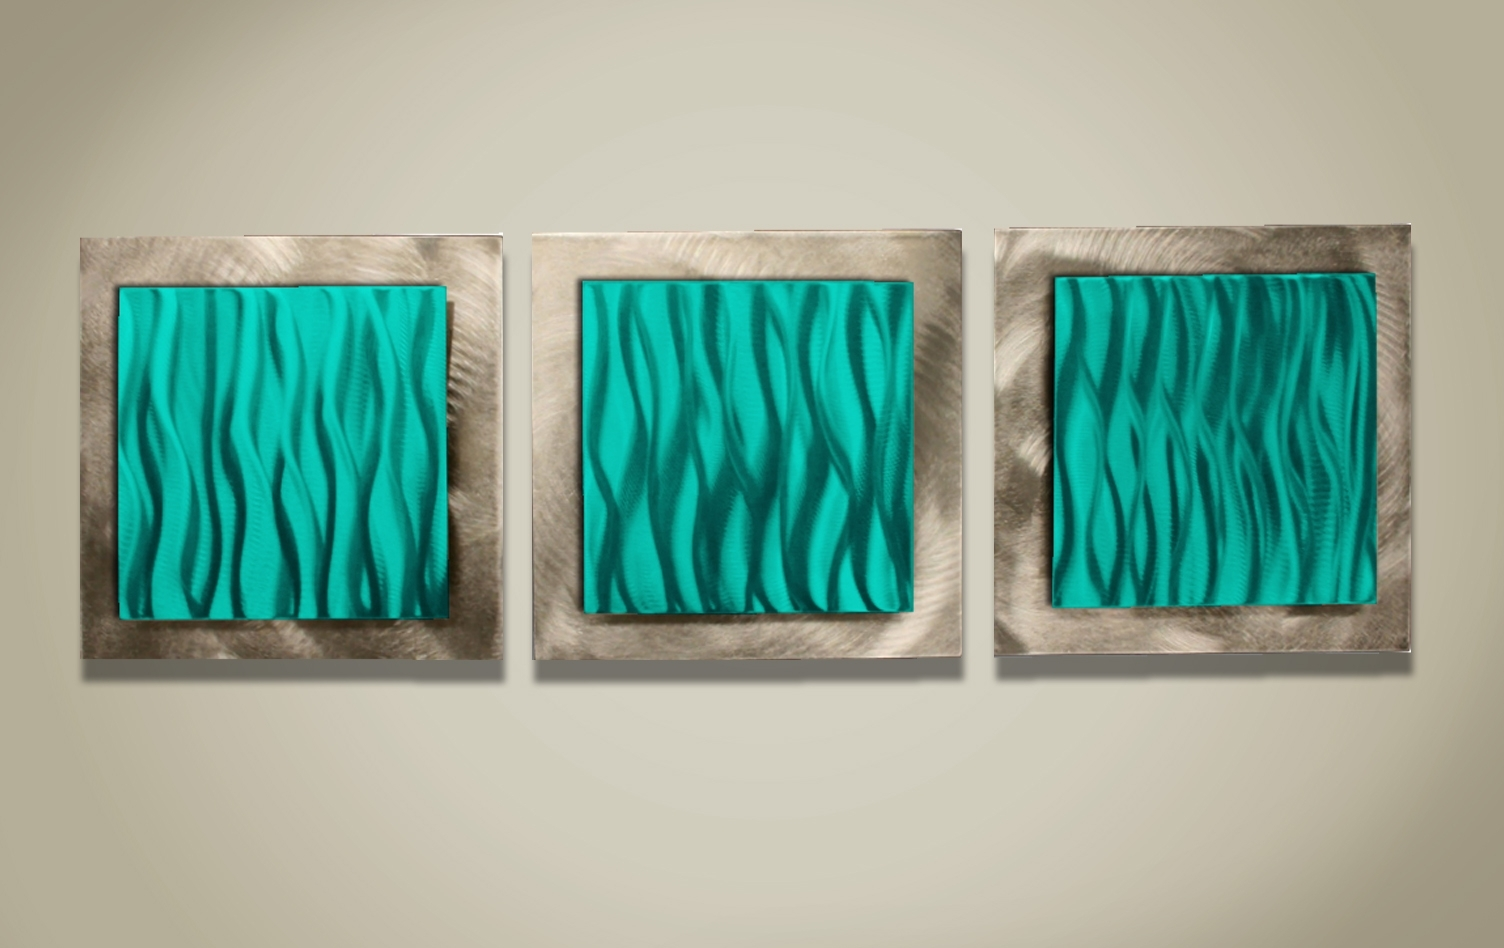 Wall Art Decor: Turquoise Painting Sale Wall Art Good Looking Throughout Popular Glass Wall Art For Sale (View 11 of 15)